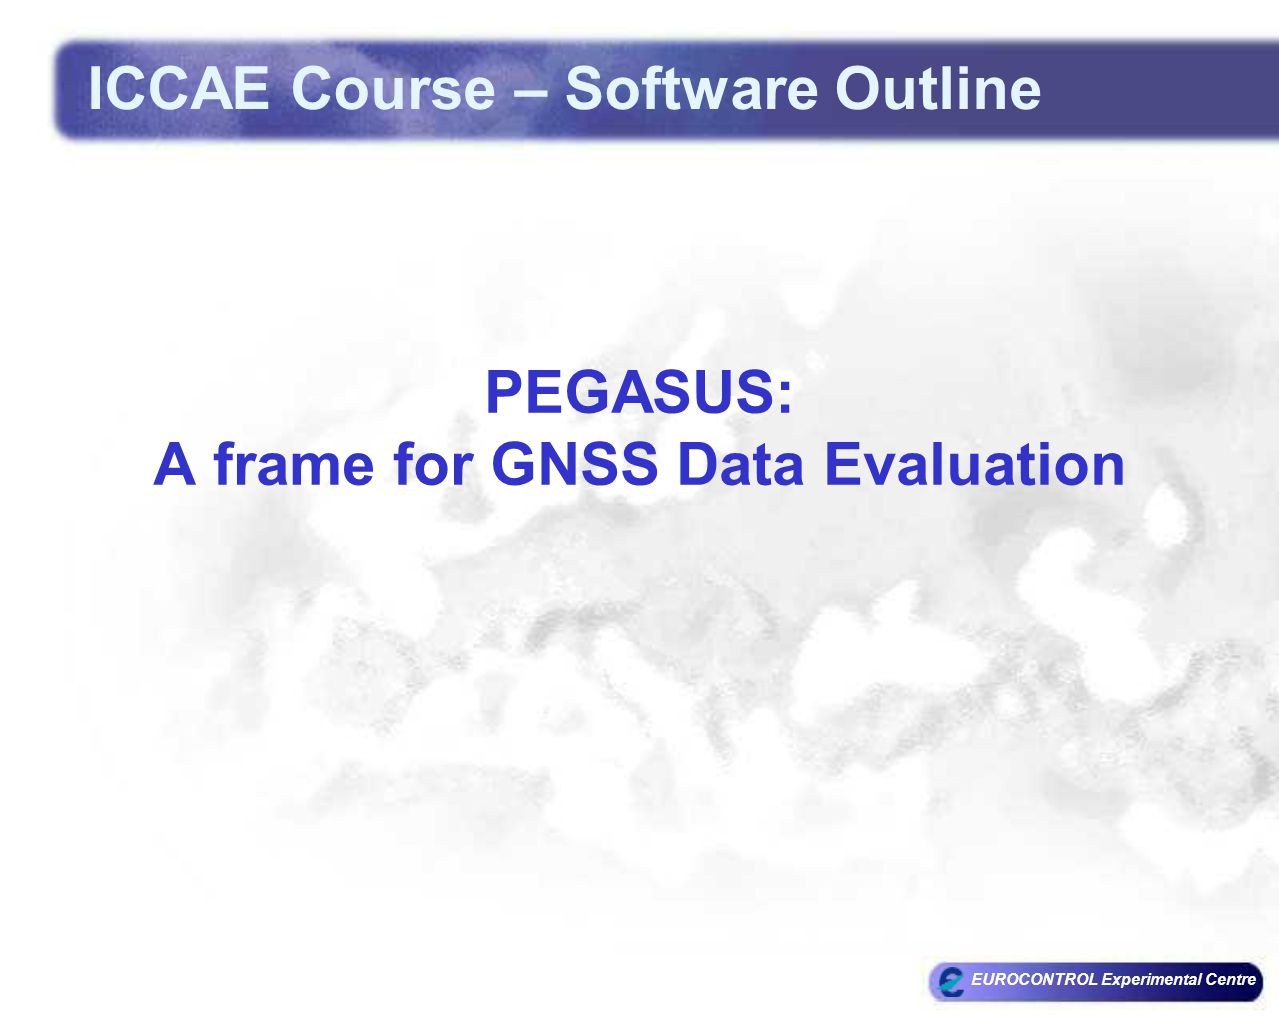 EUROCONTROL Experimental Centre PEGASUS: A frame for GNSS Data Evaluation ICCAE Course – Software Outline